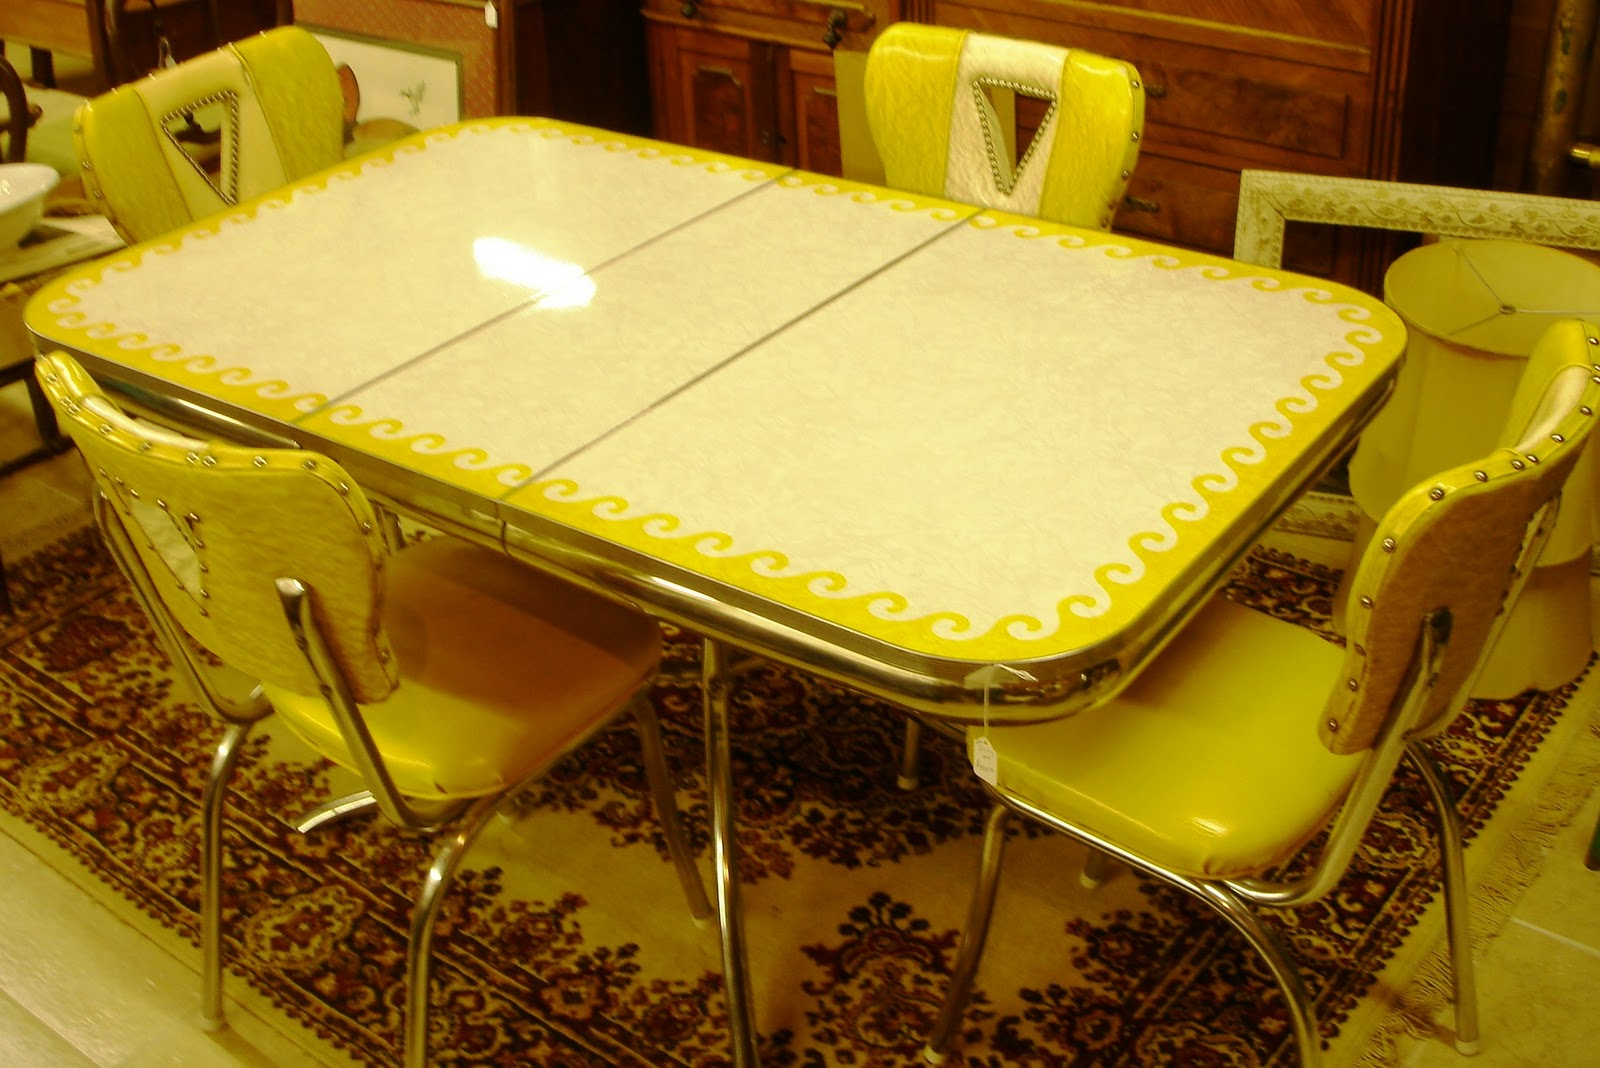 1950 s yellow formica table and chairs shower chair for elderly baron von balsiger 39s antiques fantastic 50 dinette set